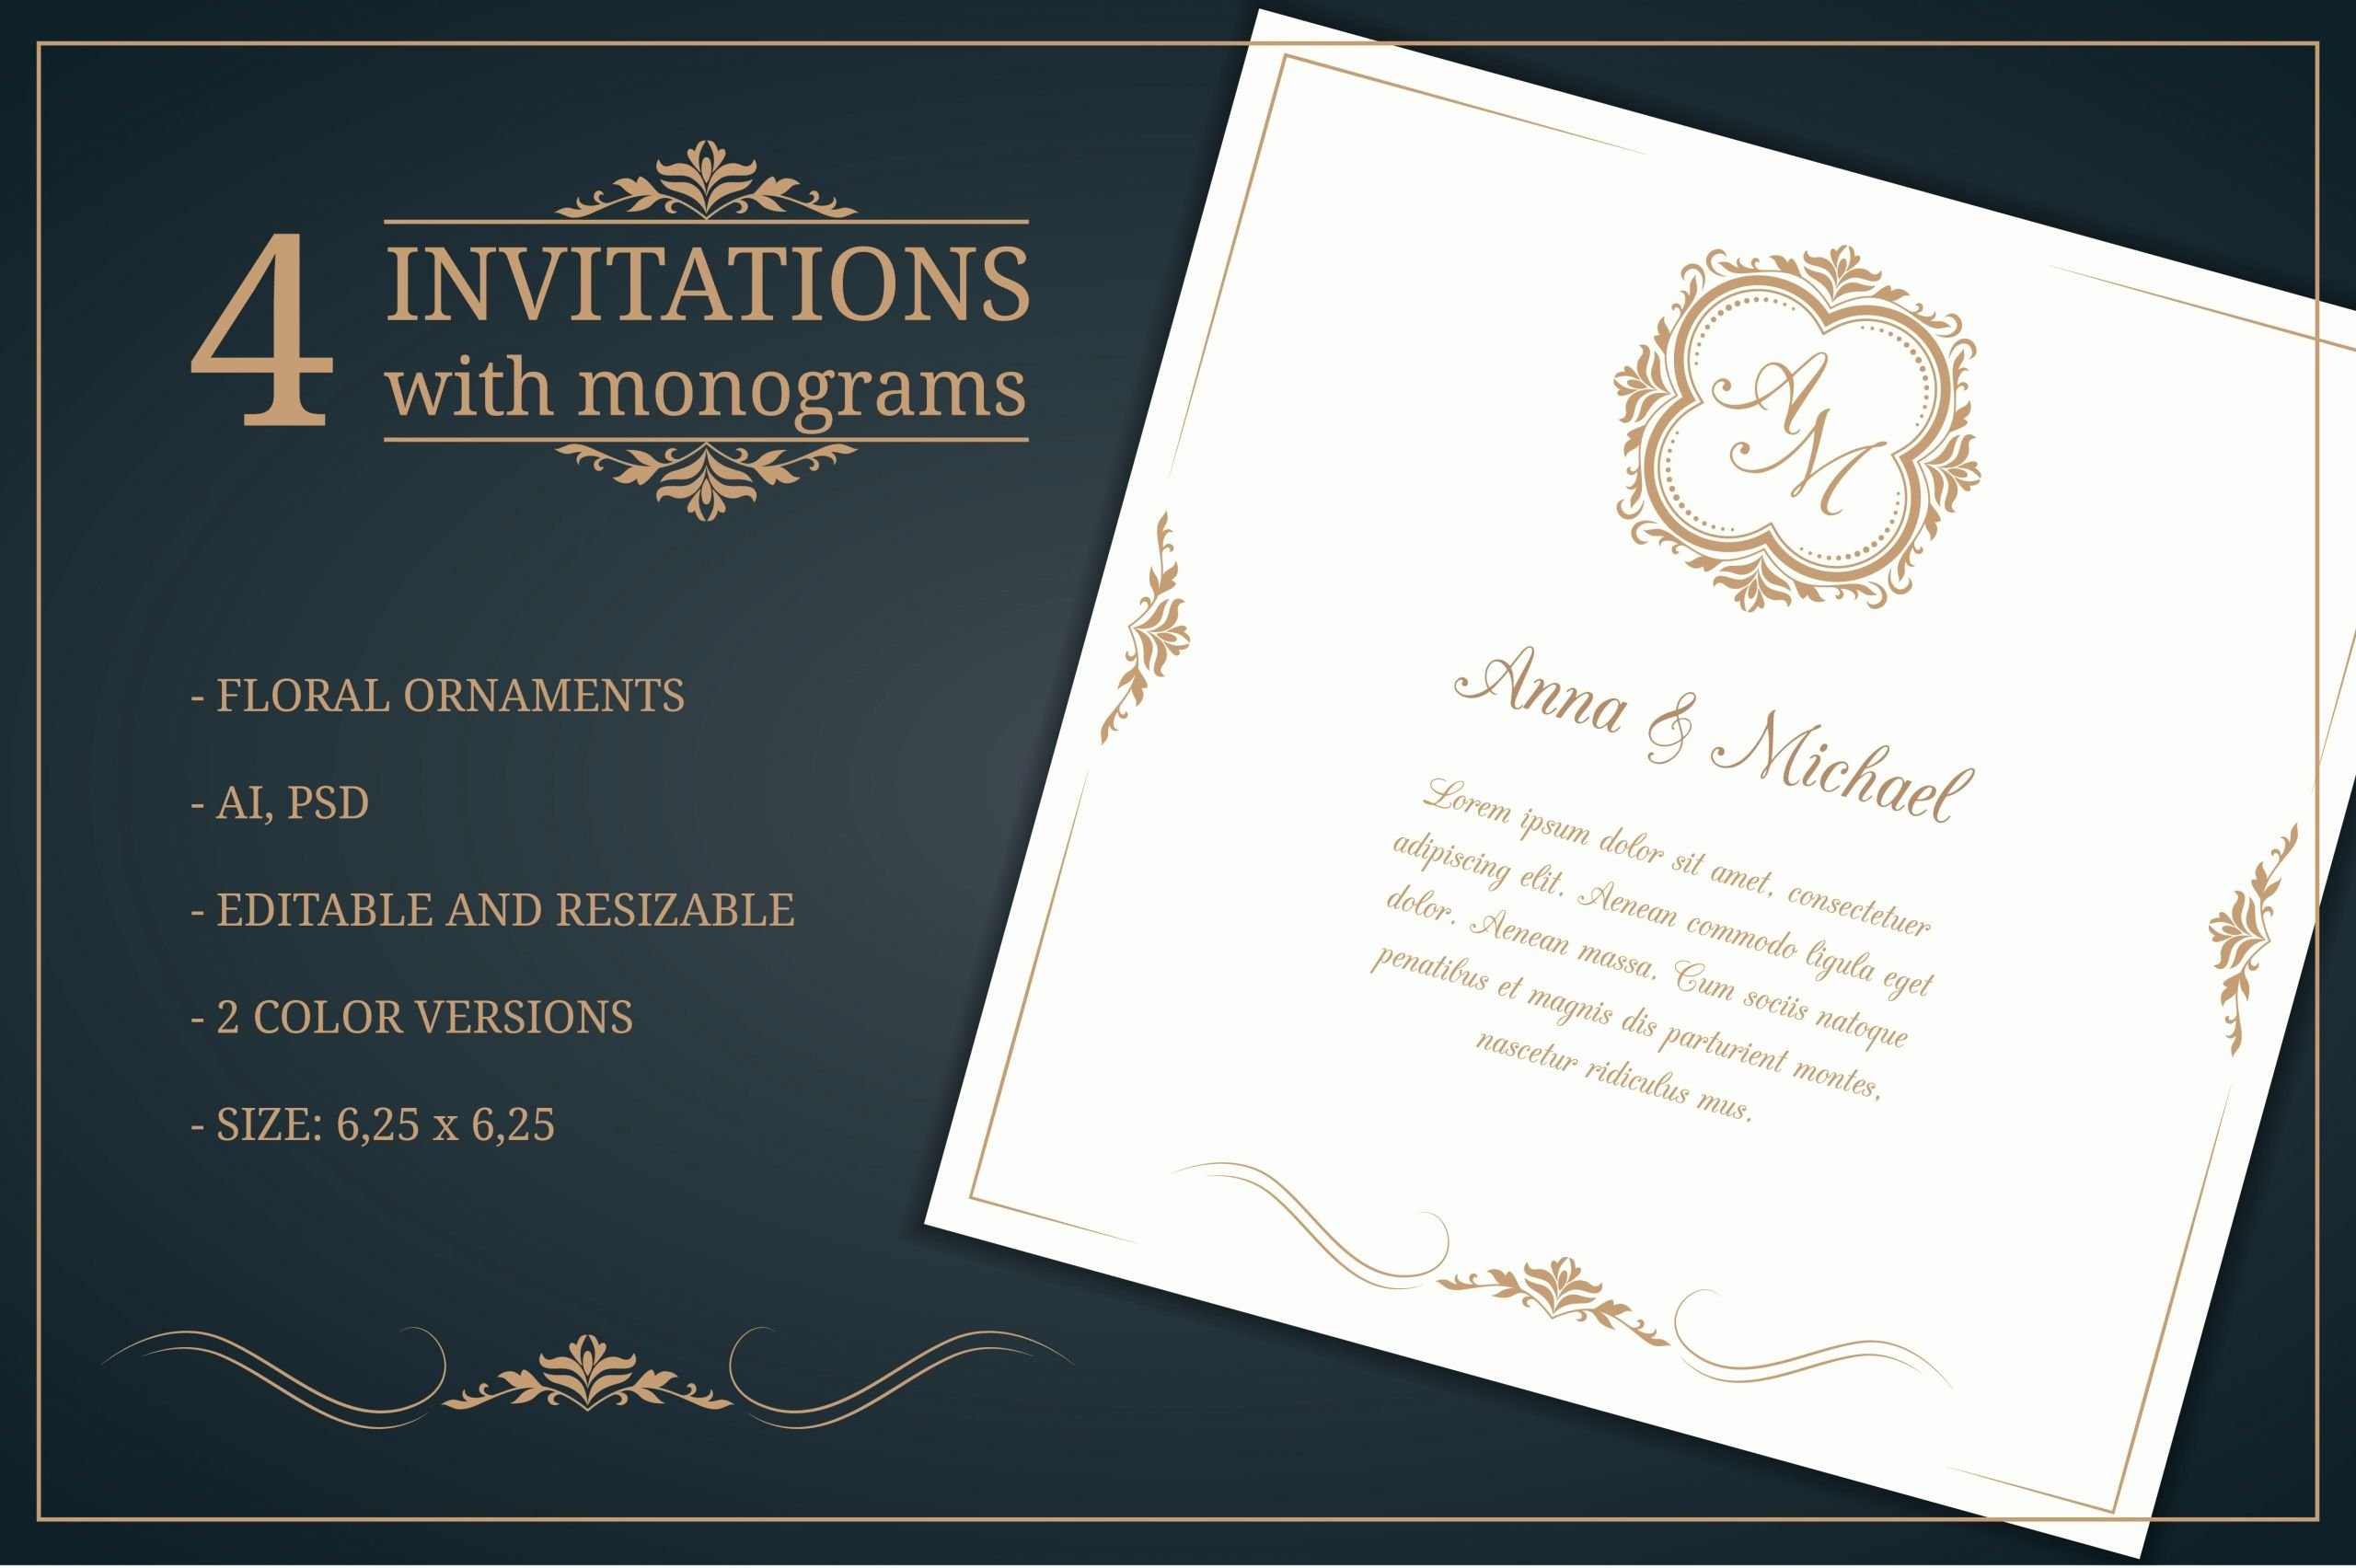 Wedding Invitations Template Free Luxury Wedding Invitations with Monograms Wedding Templates